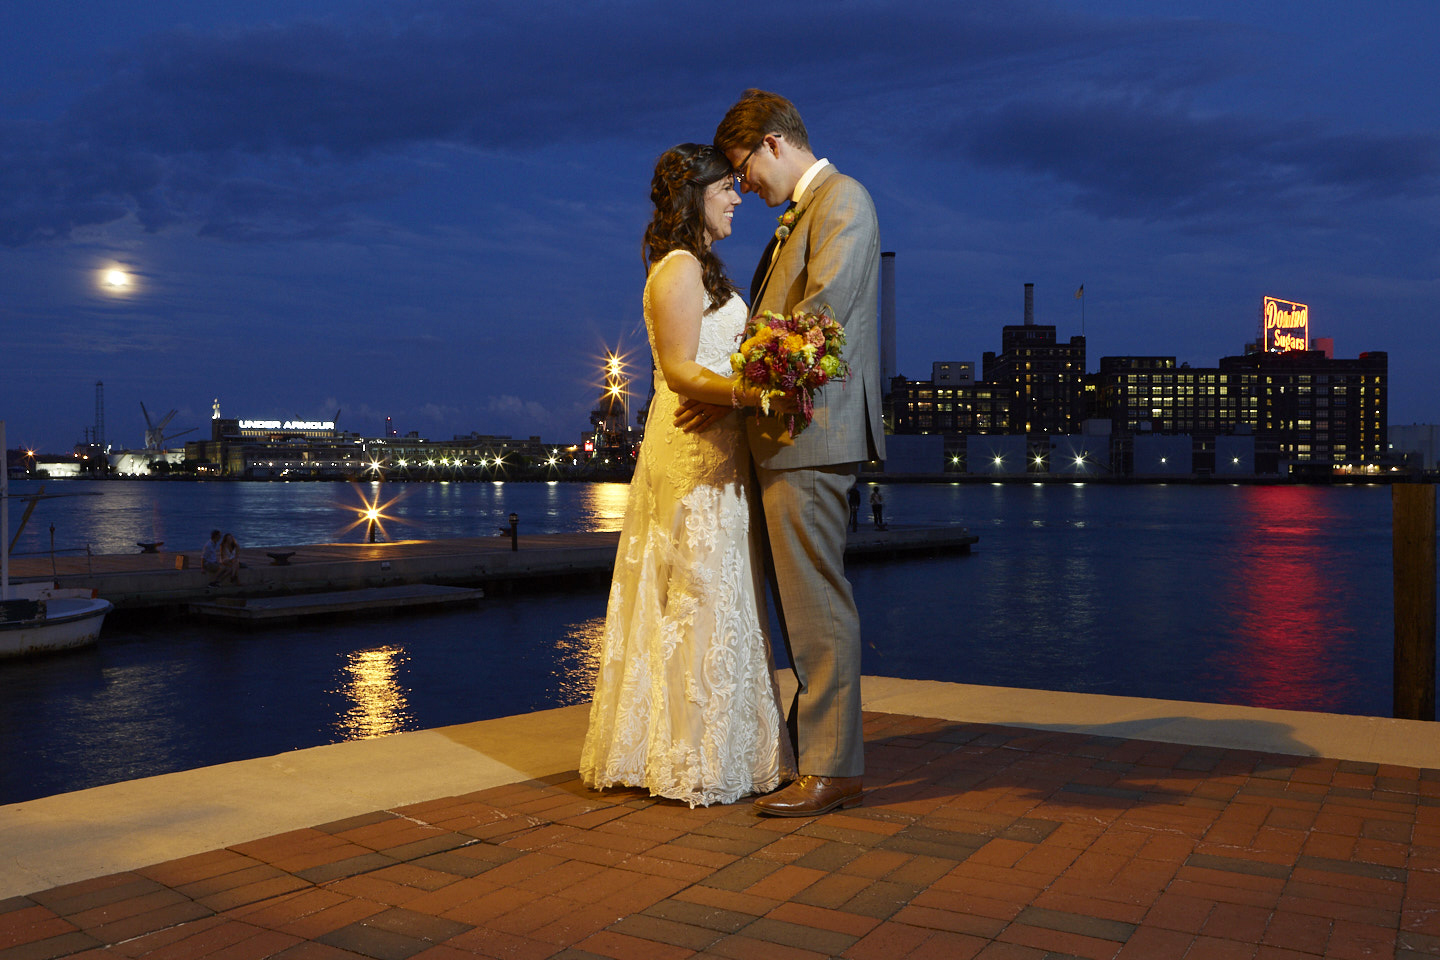 bride and groom stand together by the water in the city